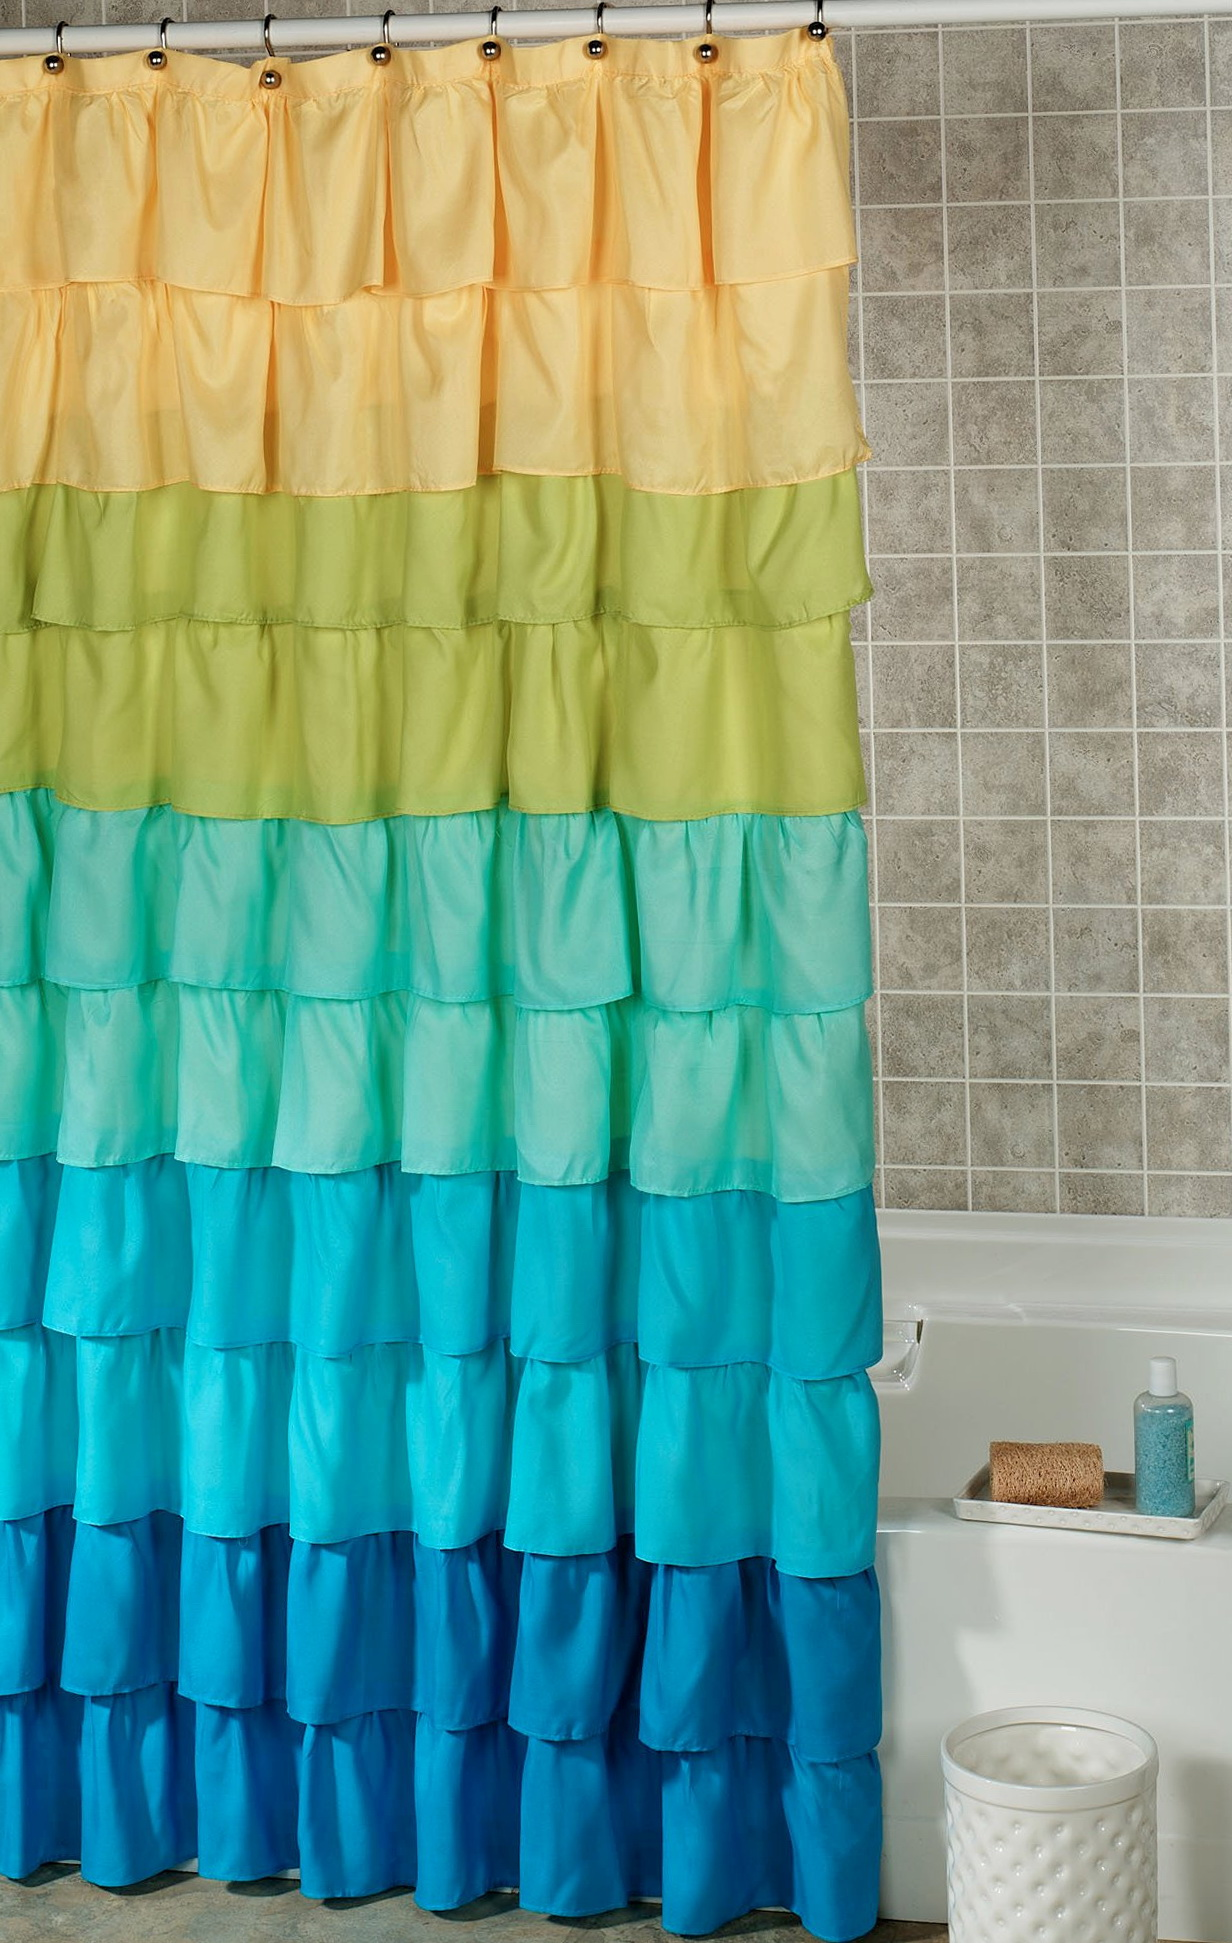 Where To Buy Shower Curtains Online Home Design Ideas